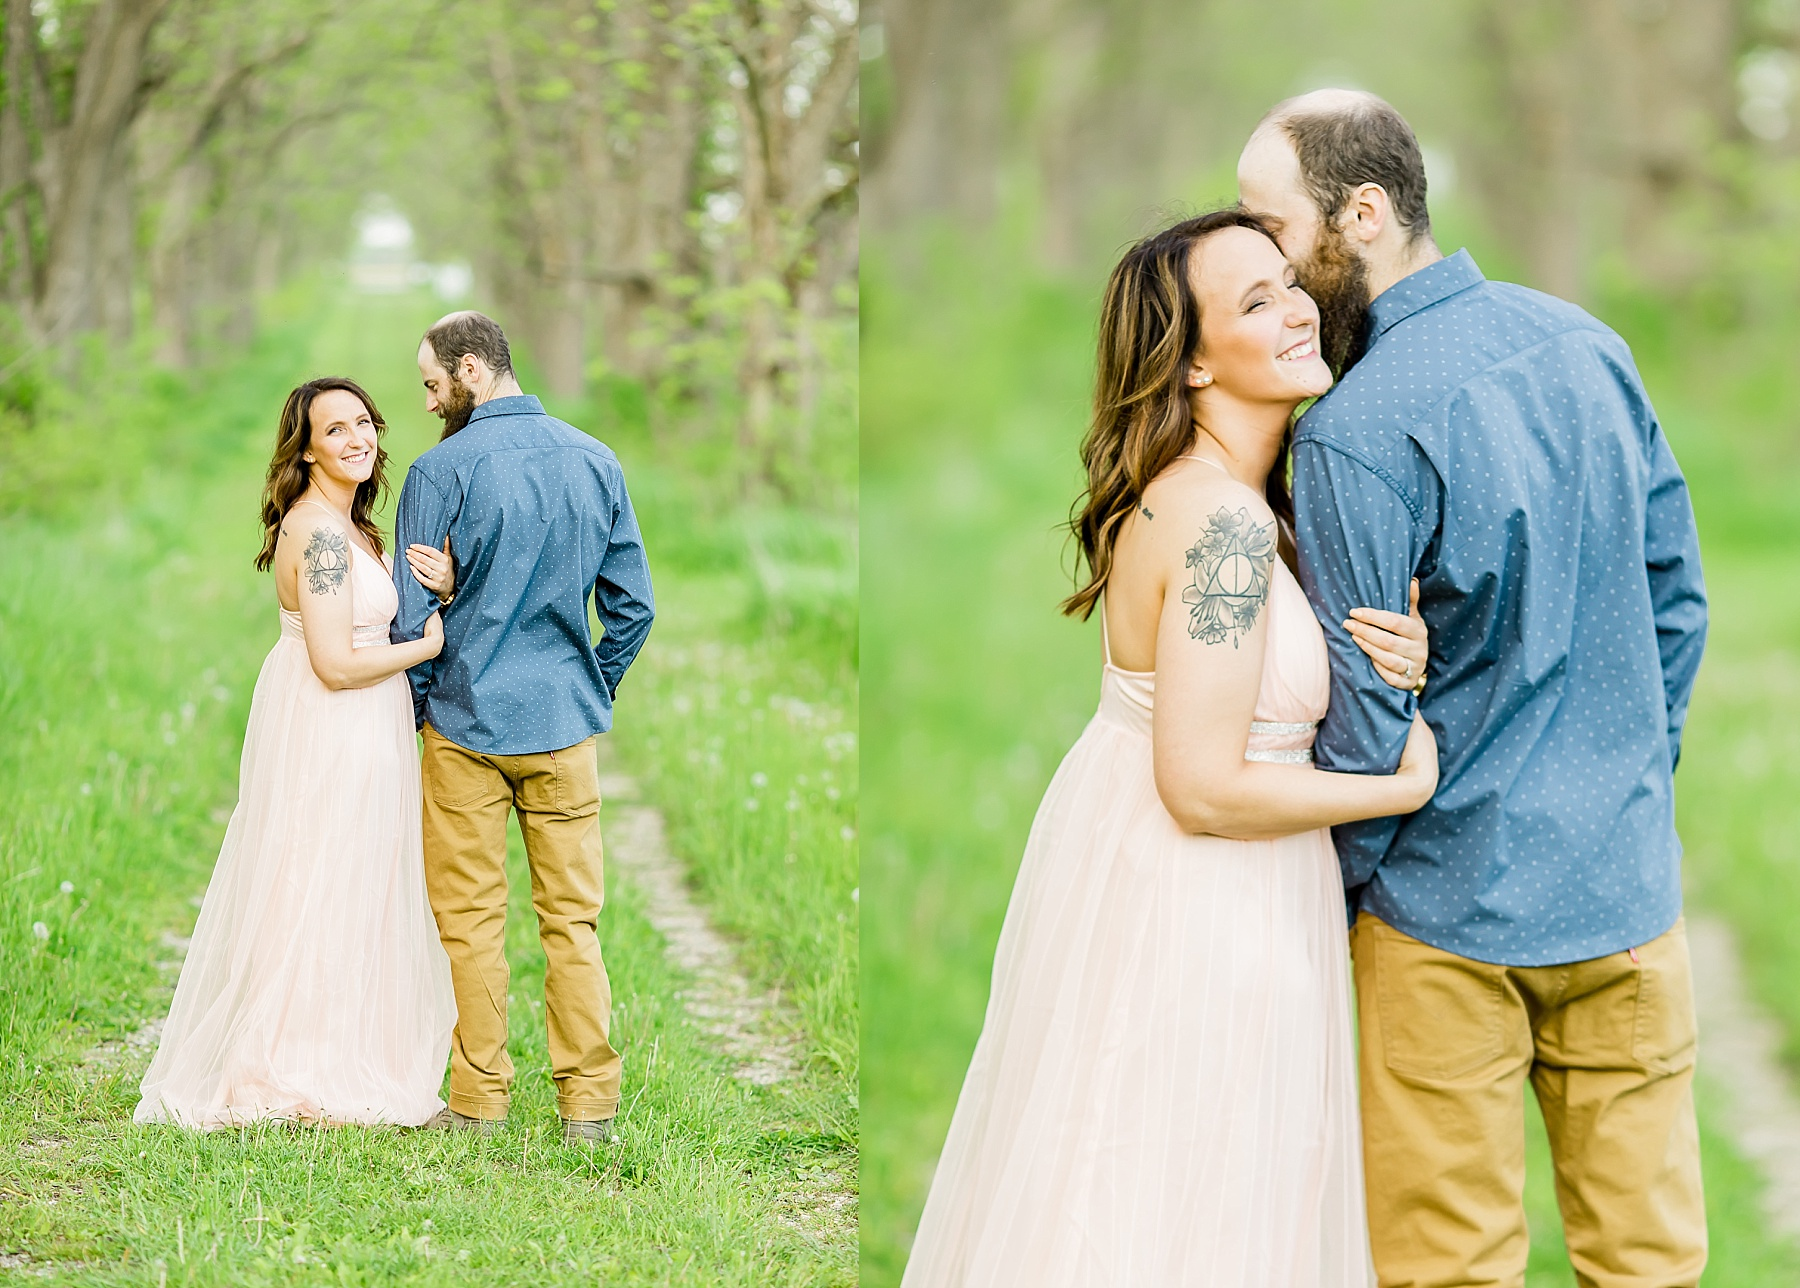 monticello indiana wedding engagement photography simple adventure weird_0031.jpg